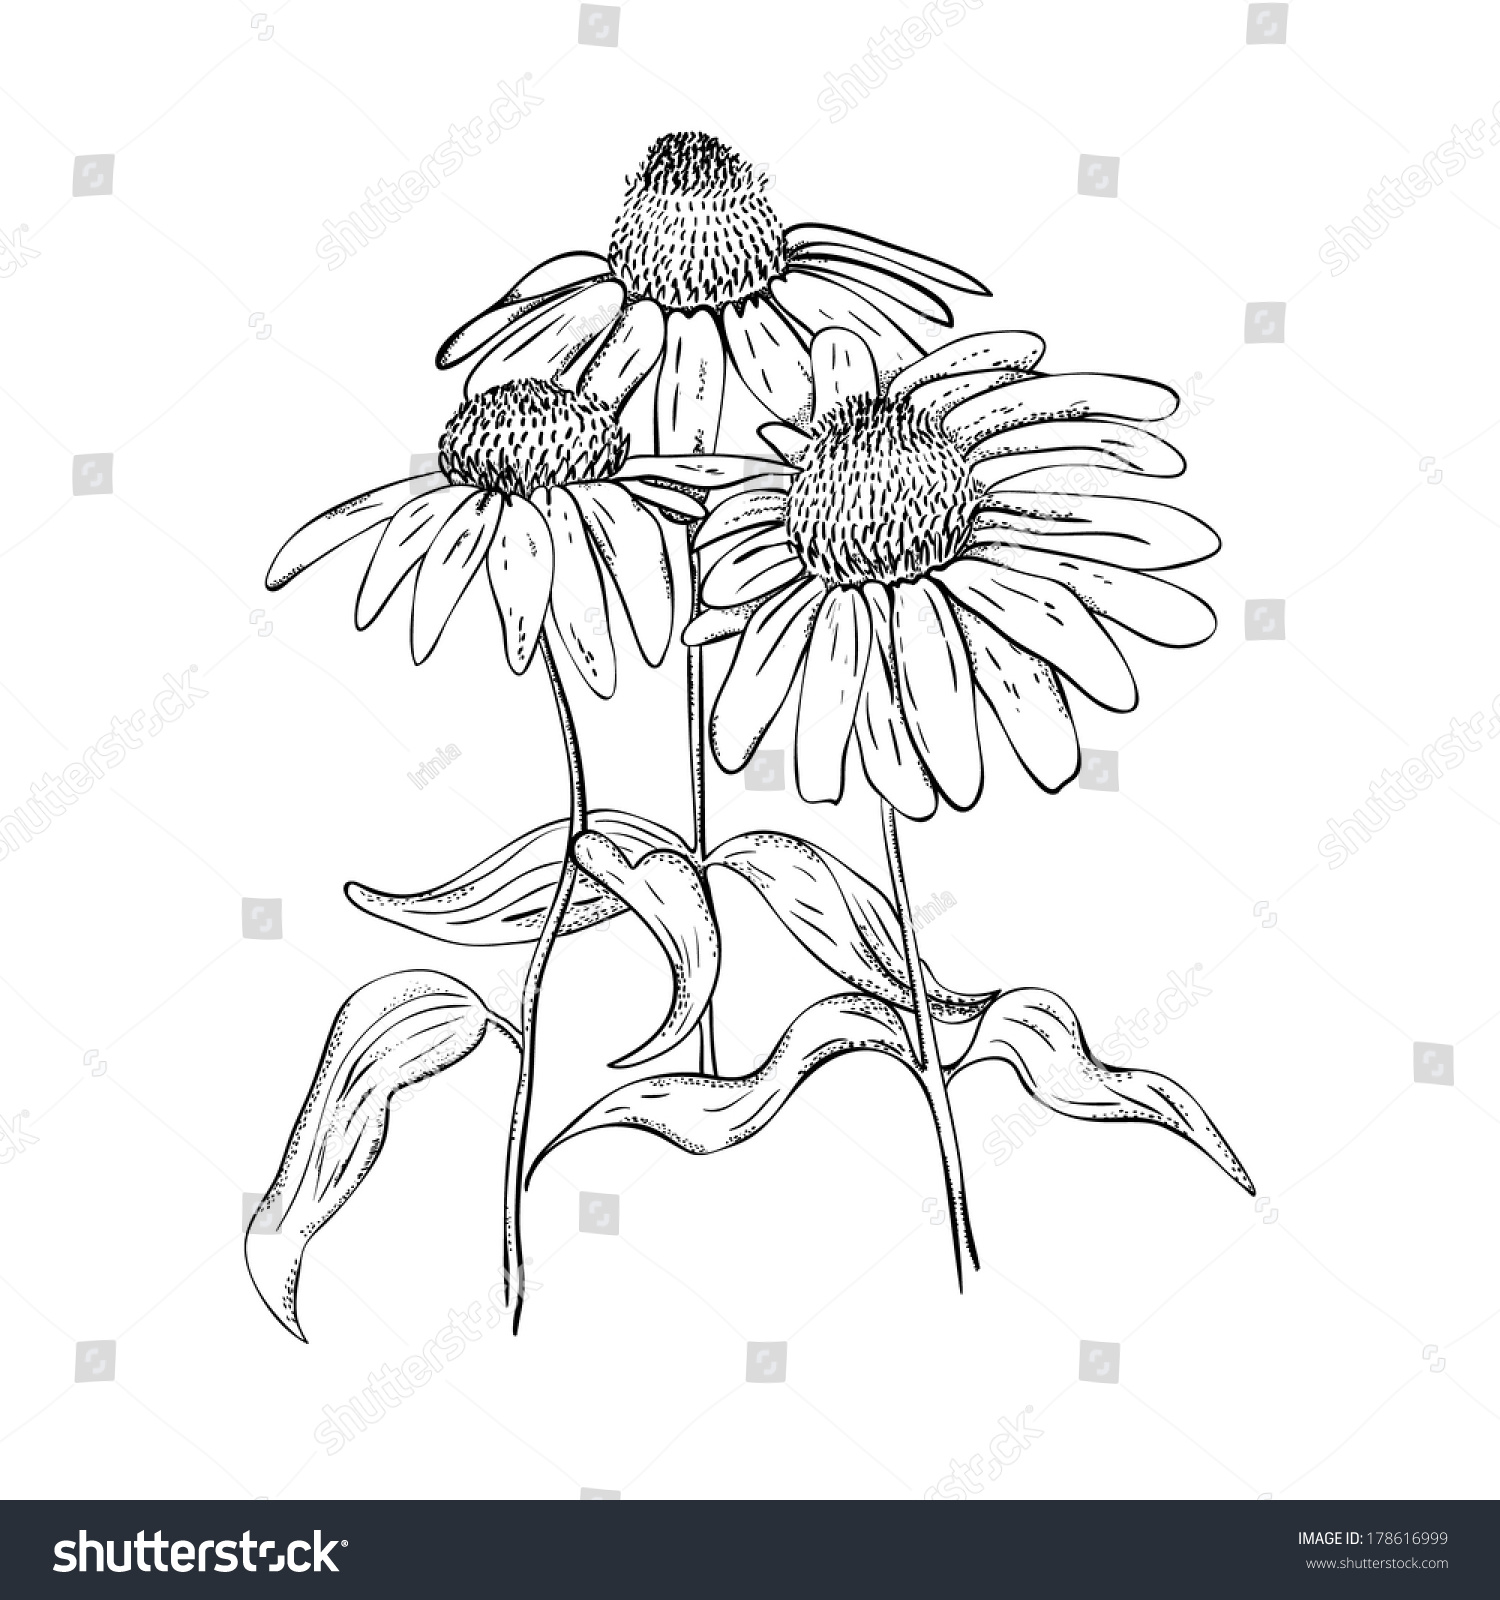 Line Drawing Coneflower : Monochrome drawing herb echinacea style line art stock